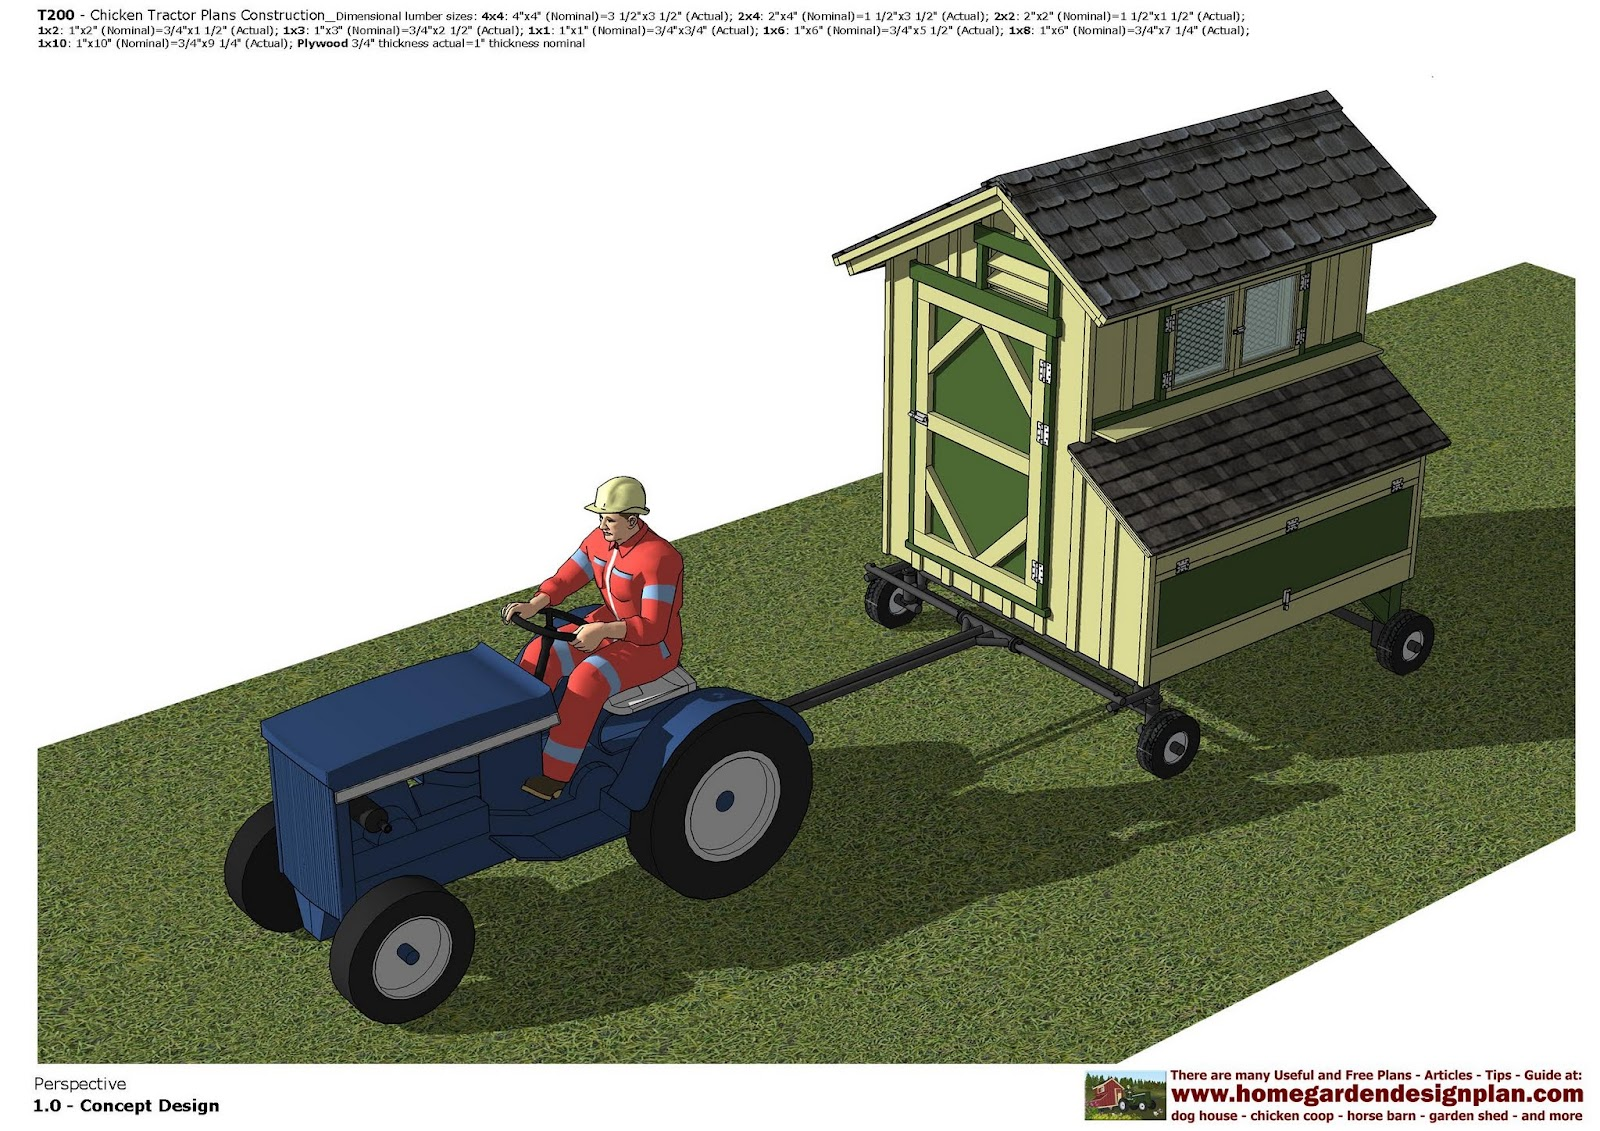 Home Garden Plans T200 Chicken Tractor Plans Construction Chicken Trailer Plans